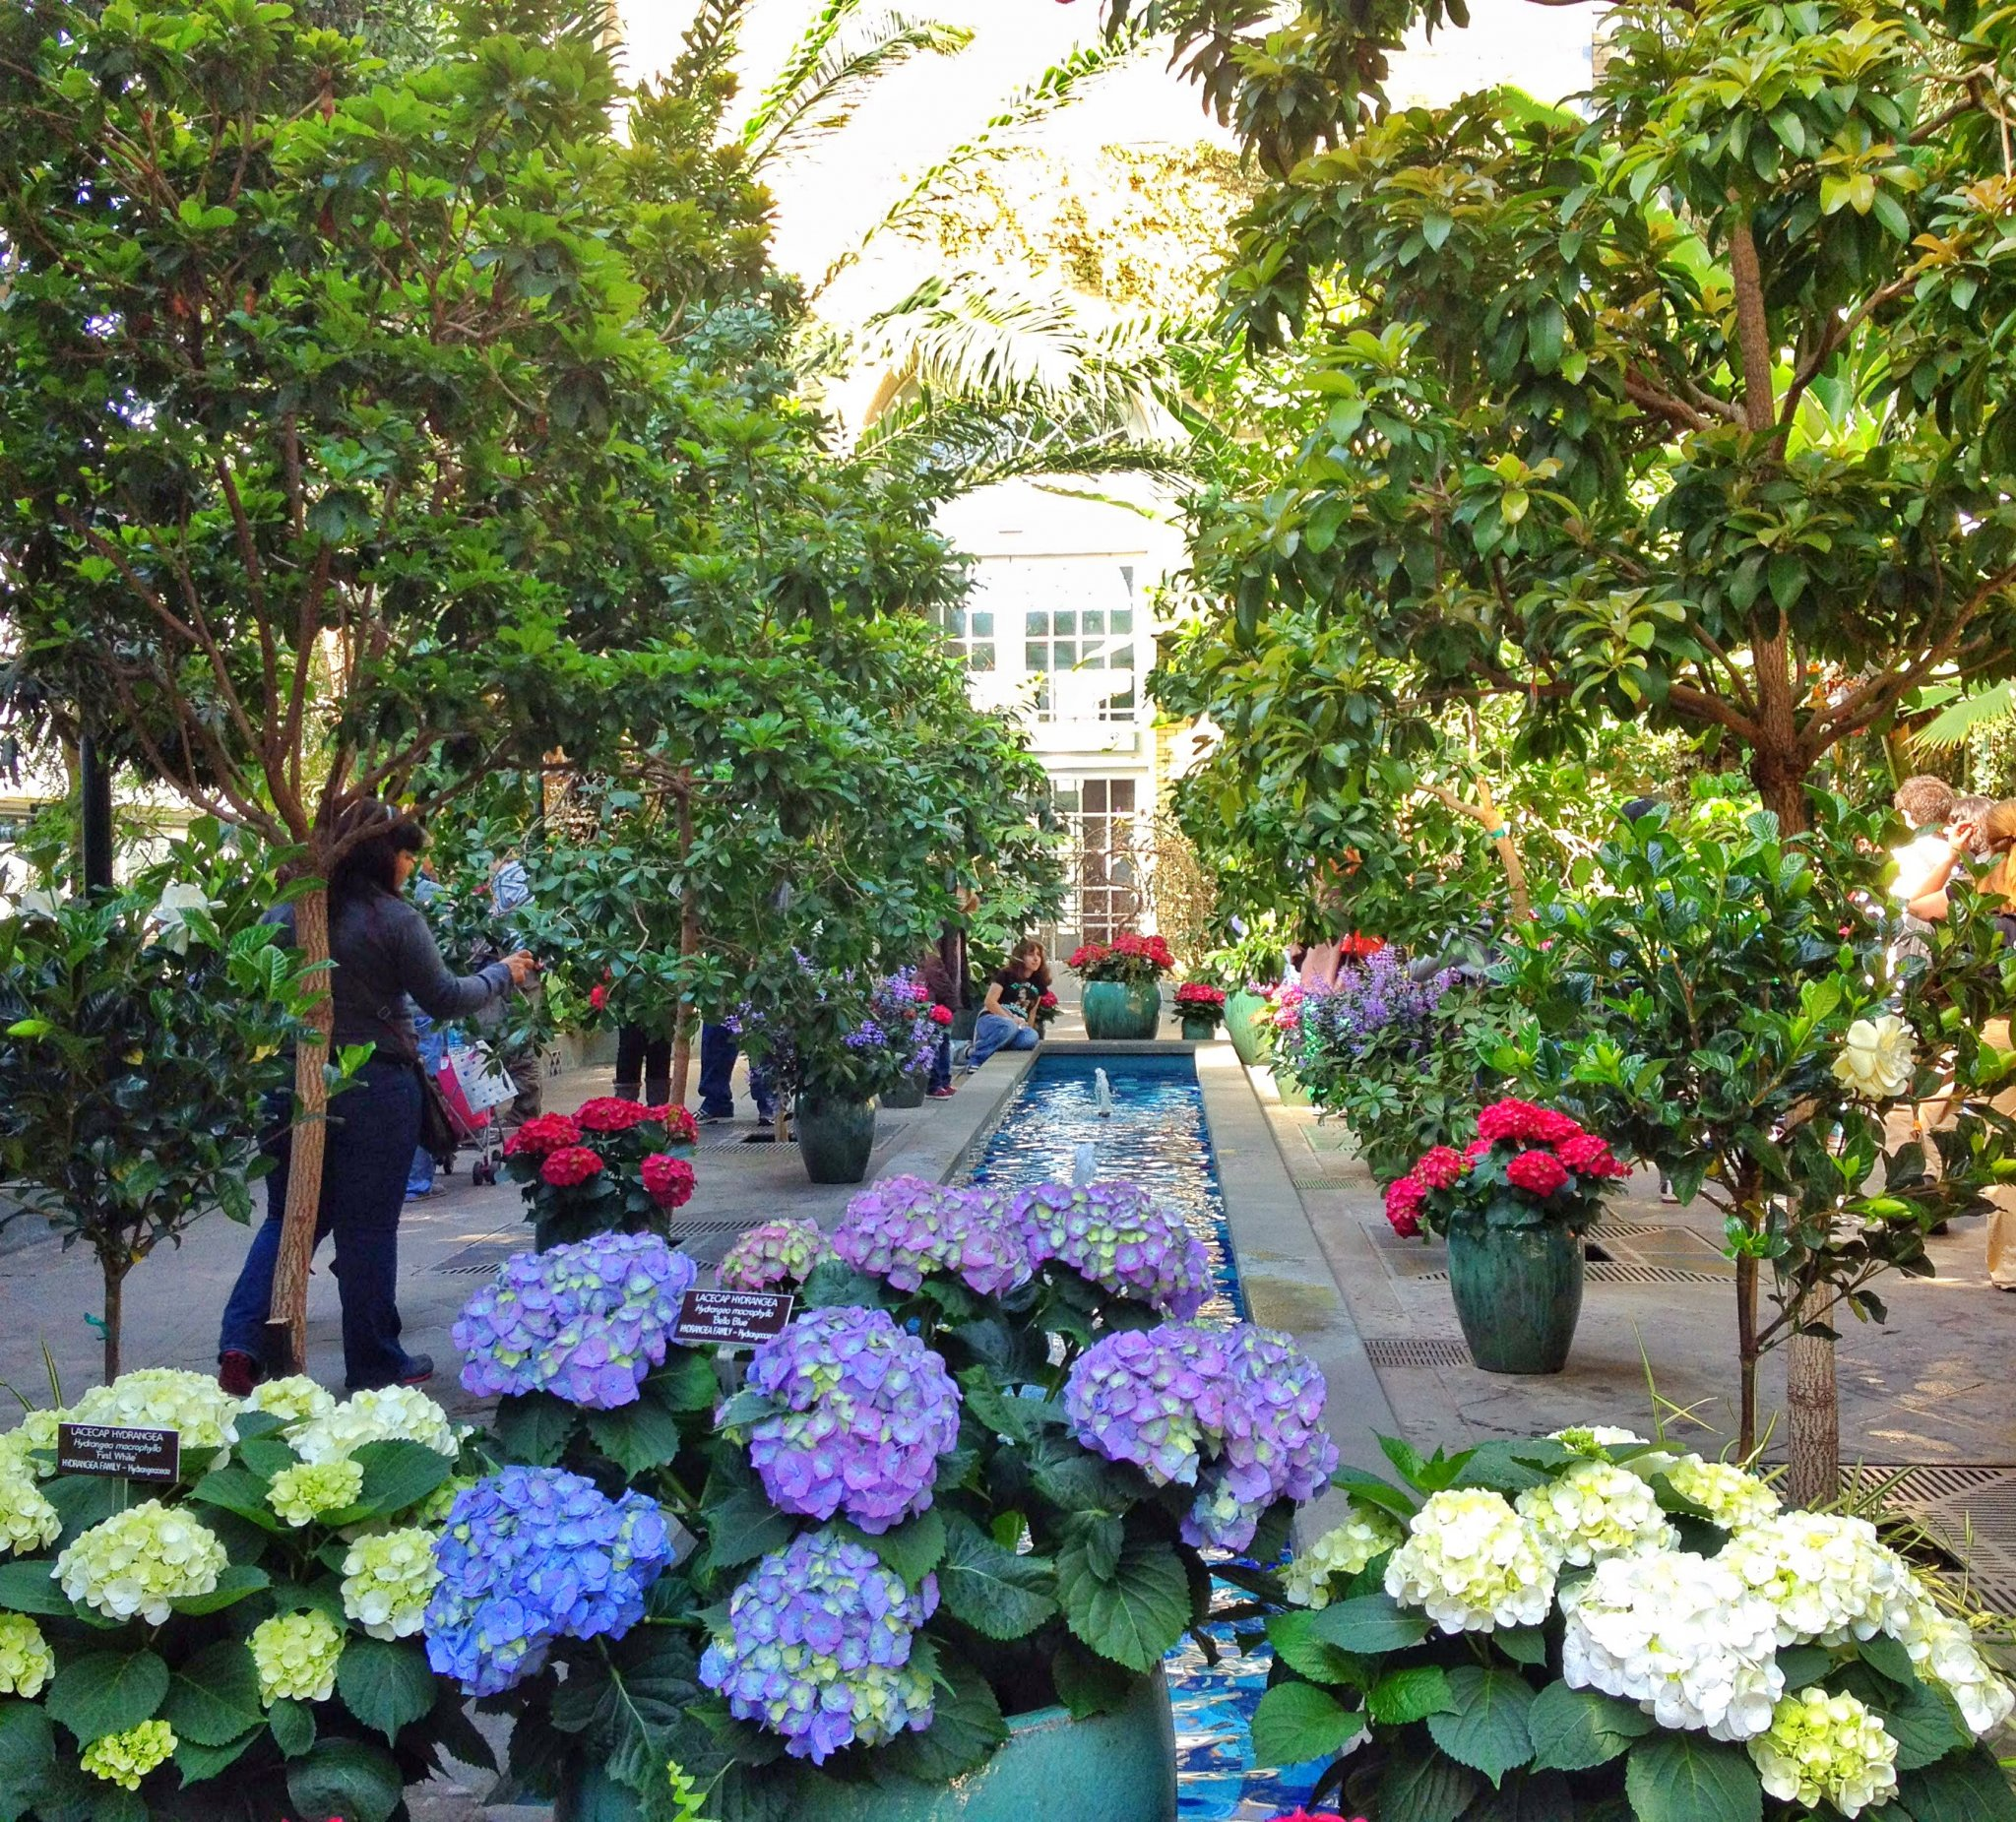 GuideToTheSmithsonian-Entrance is a hall of flowers with a small reflection pool